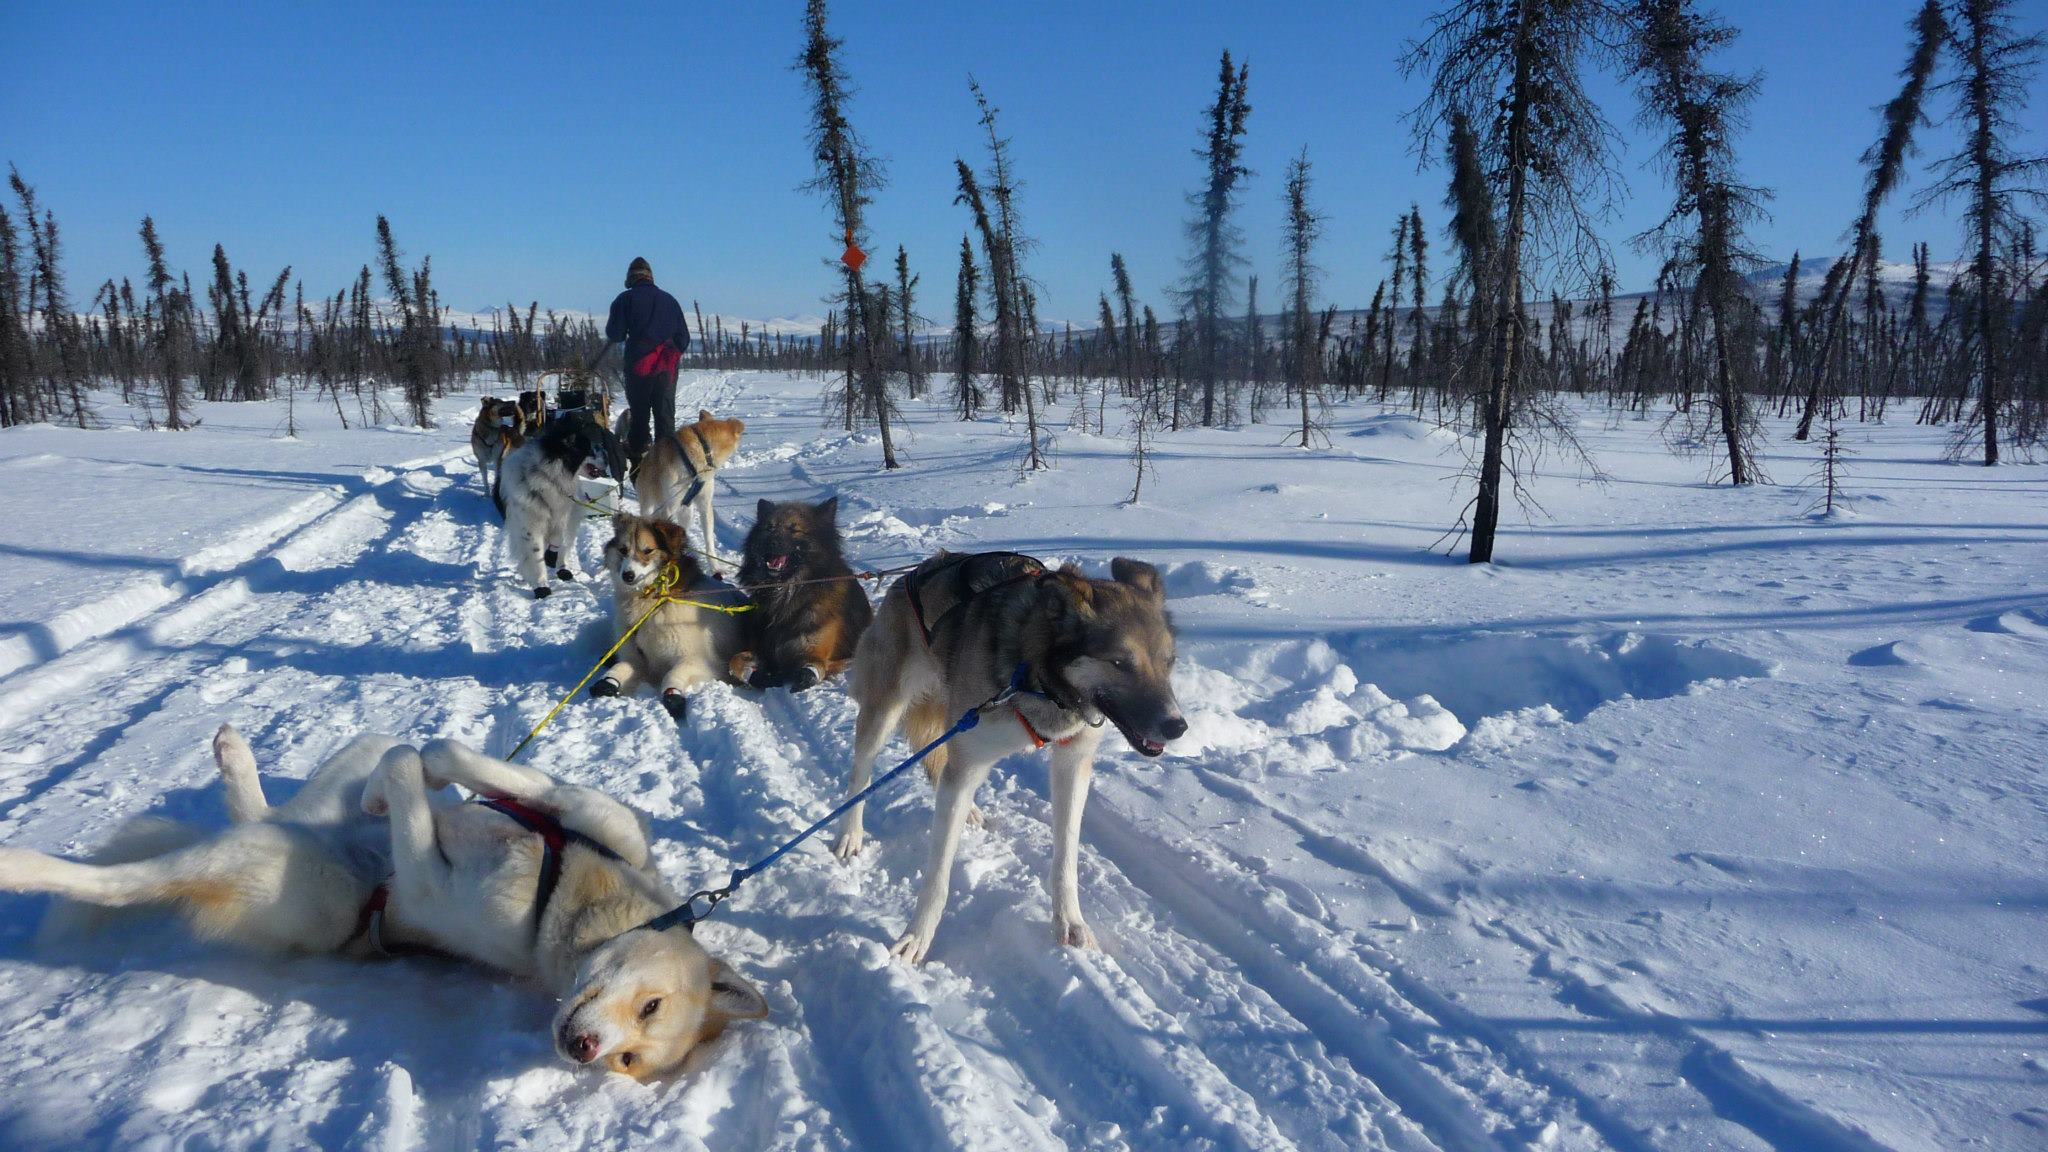 Image of a dog sled with huskies in snowy alaska